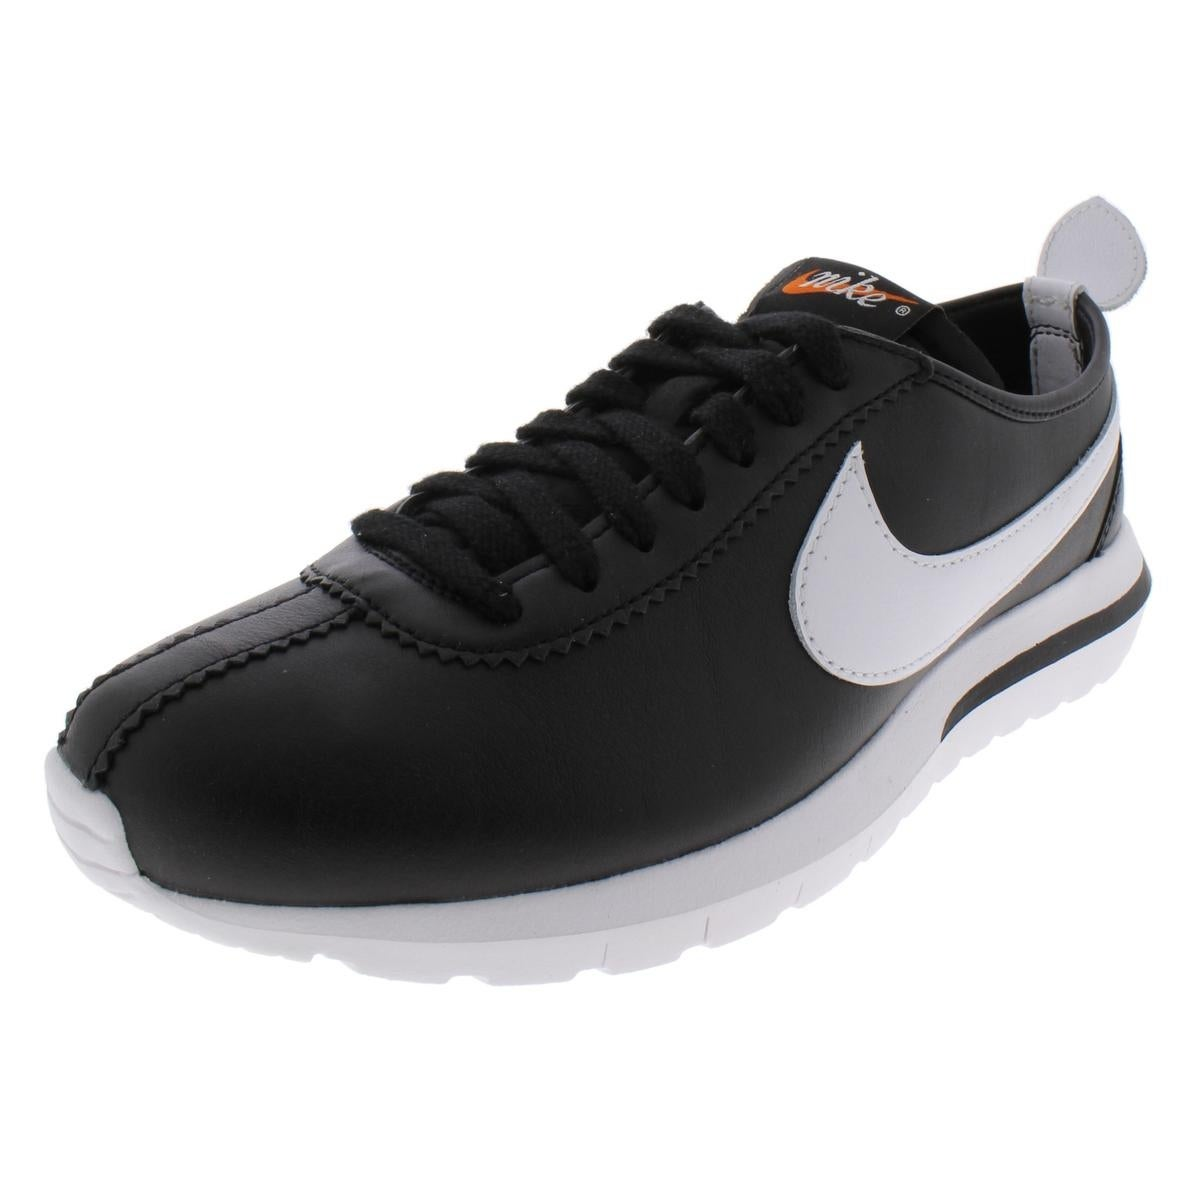 630c00446b279 Shop Nike Mens Roshe Cortez Nm Sp Running Shoes Low Top Sneaker ...